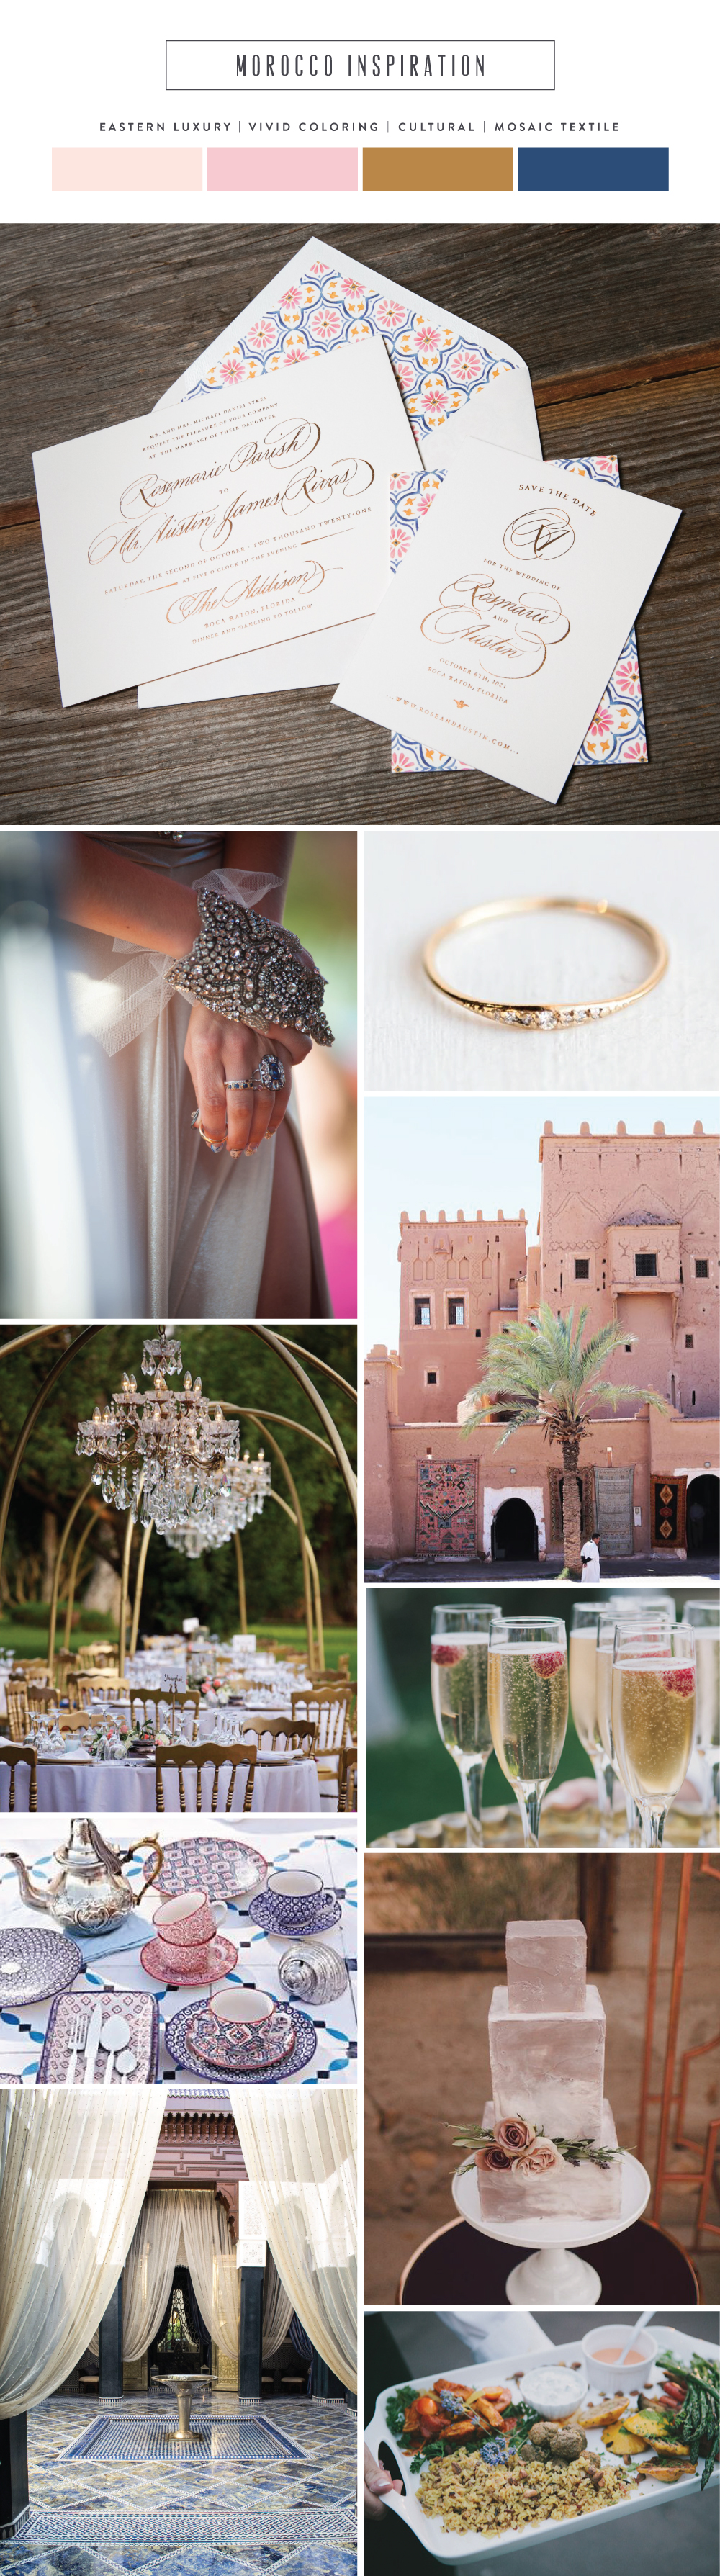 Introducing Morocco: vibrant mosaic wedding invitation inspiration | Bella Figura